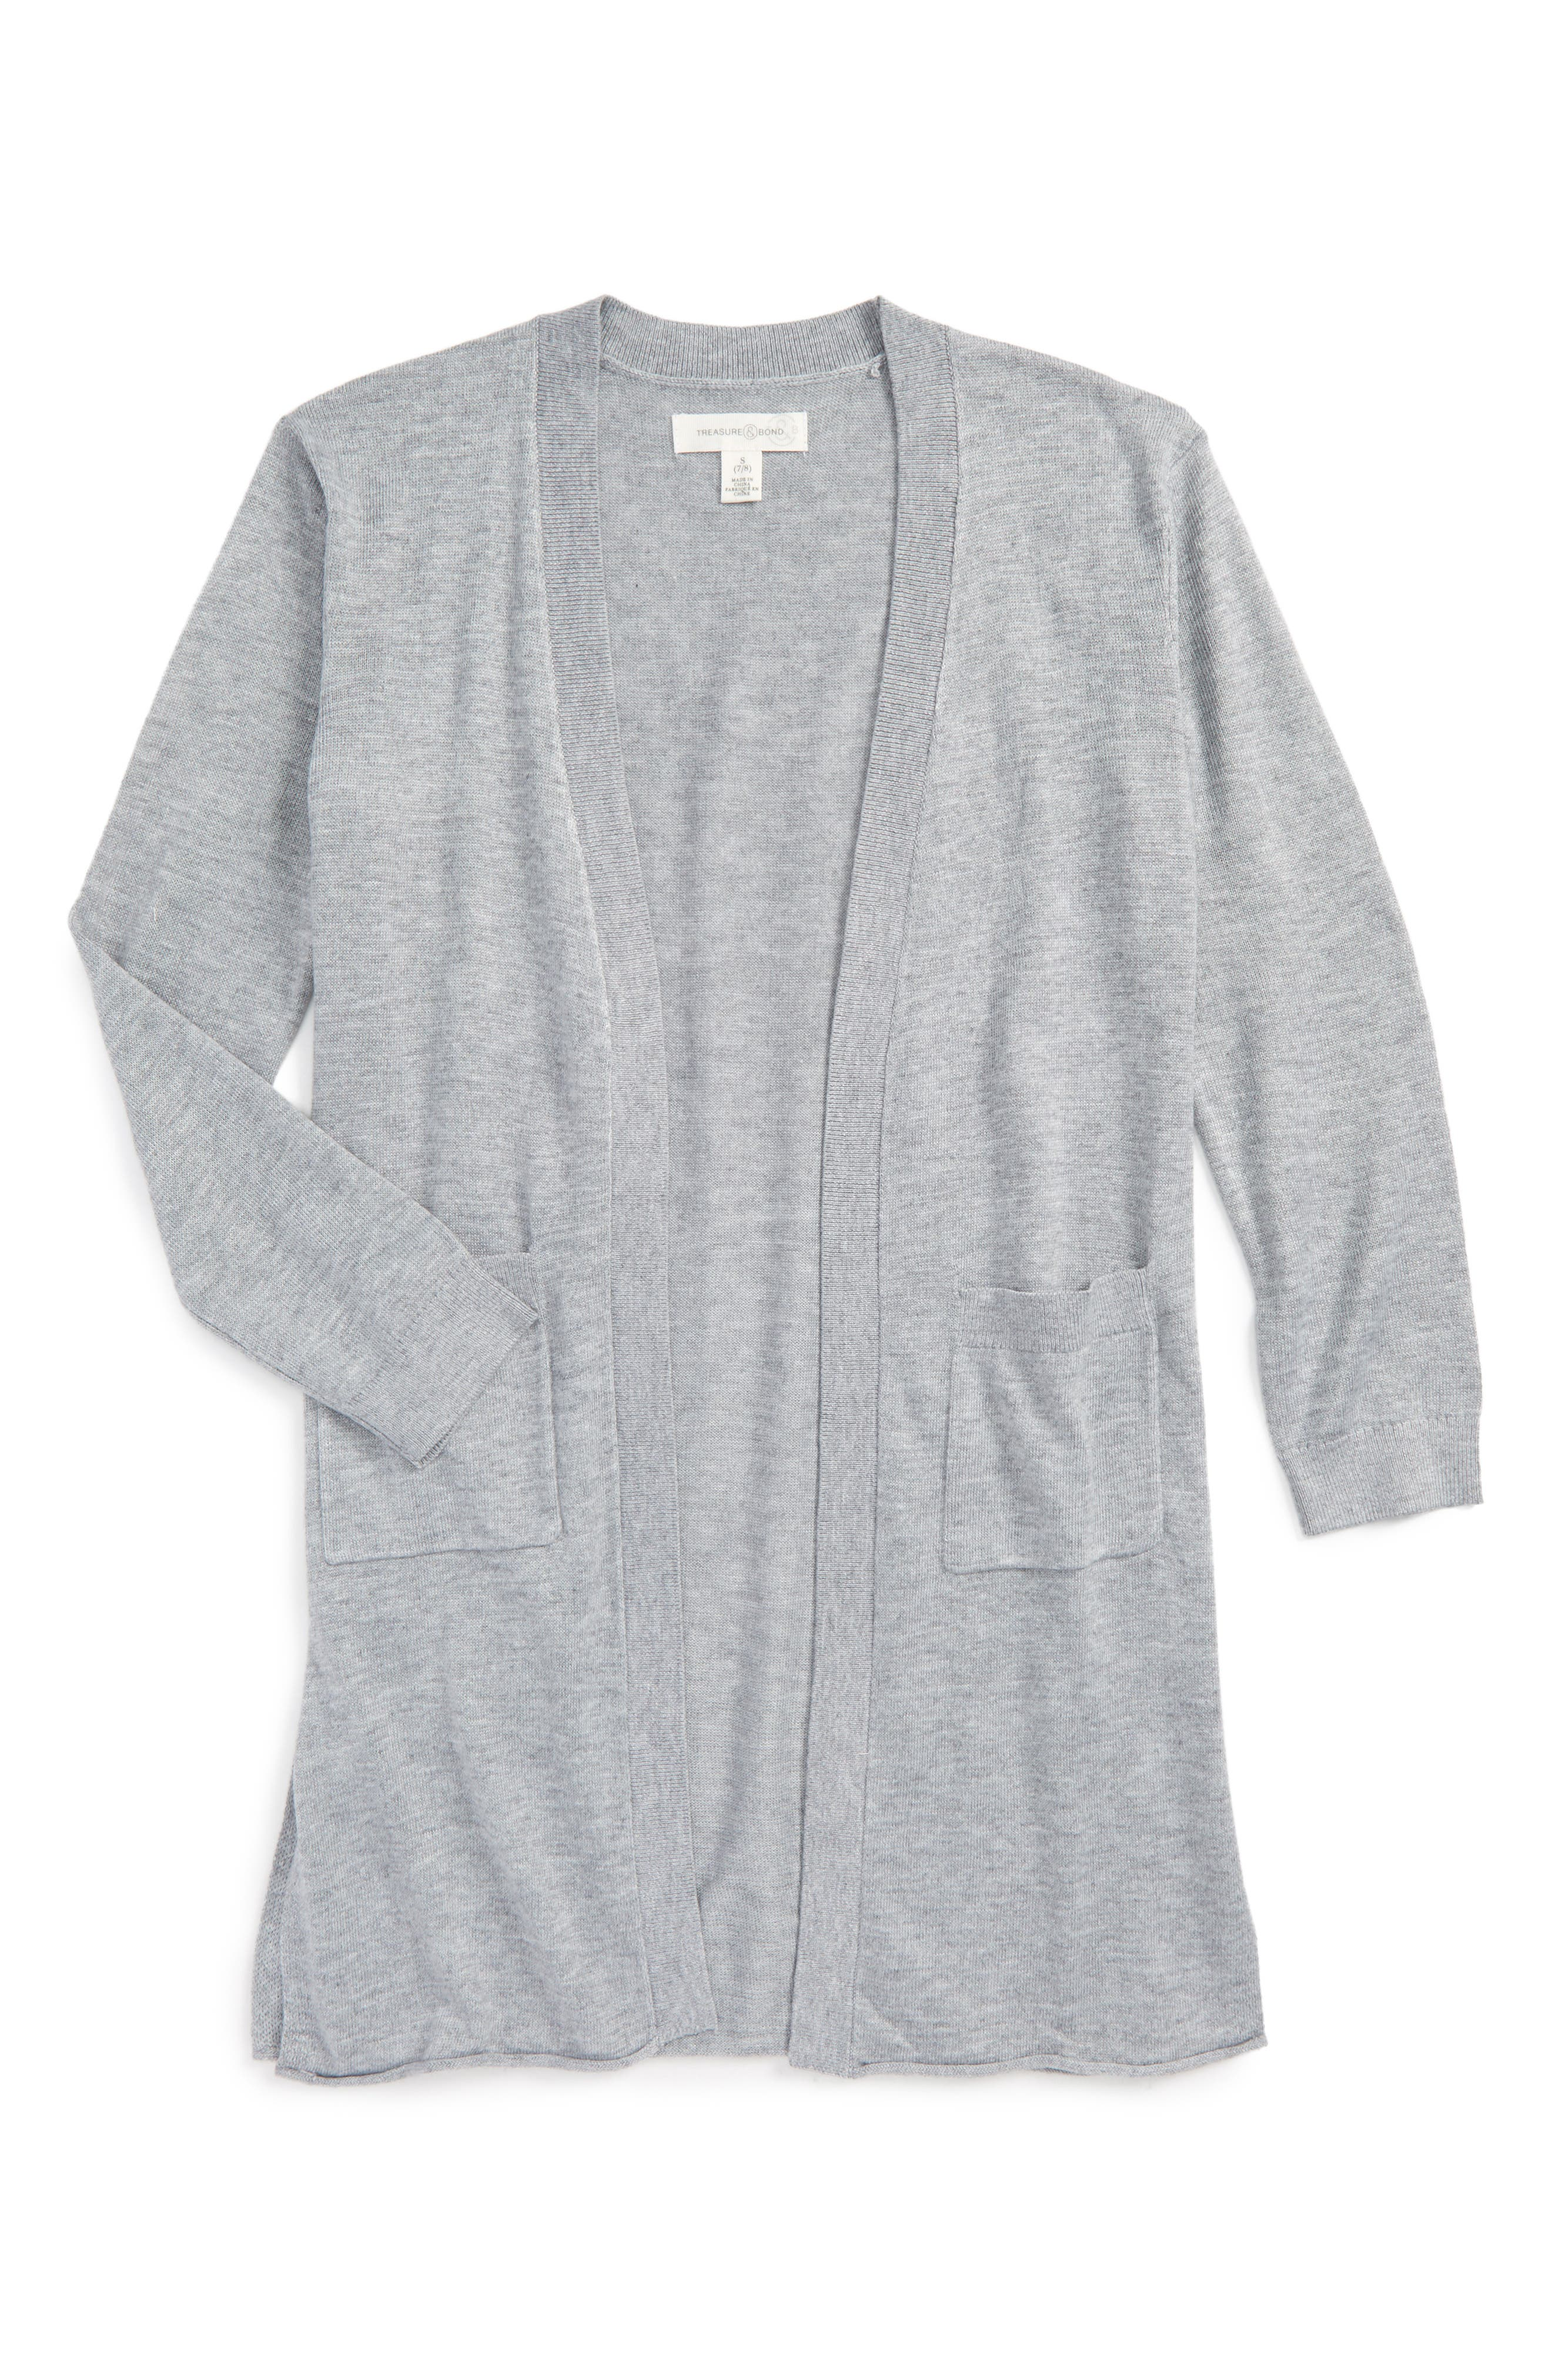 Girls' Grey Sweaters: Cardigan, Knit & Crewneck | Nordstrom ...